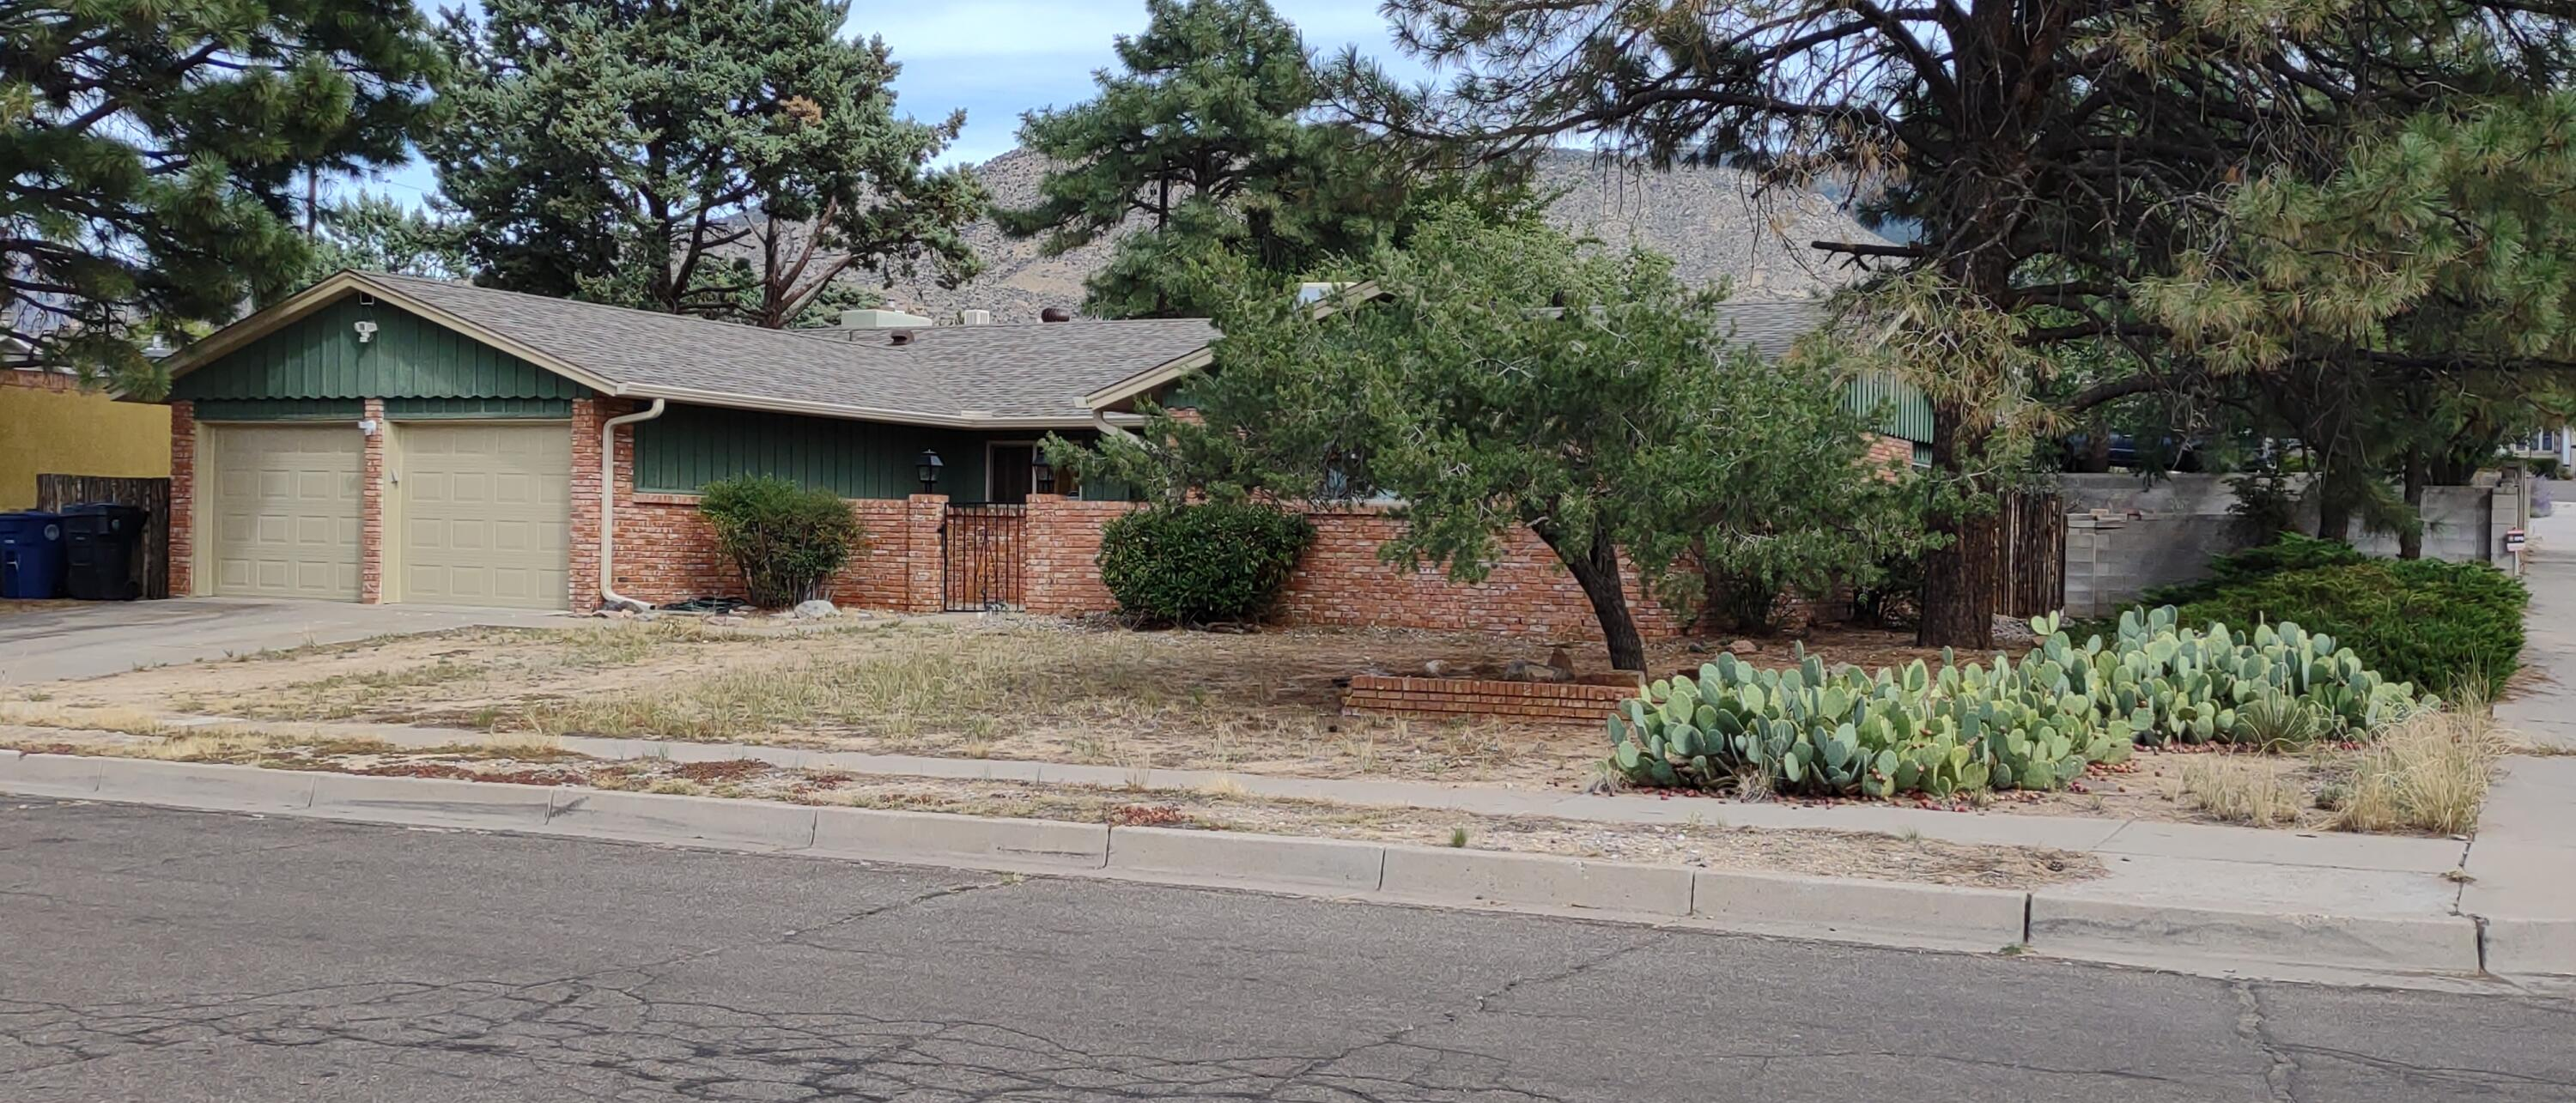 Great 1 story brick home nestled near the foothills. This wonderful home has 4 wonderful sized bedrooms, 1.75 bathrooms, 2 living areas, formal dining room and 2 car garage with openers. Improvements and upgrade are vinyl plank wood flooring, newer carpet, remodeled kitchen with updated appliances, cabinets,  counter tops, flooring and lighting. 2nd living room has wet bar, built in book shelves, brick wood burning fireplace. Don't miss the updated bathrooms, the large corner lot and all this little touches the seller has installed in the recent years.